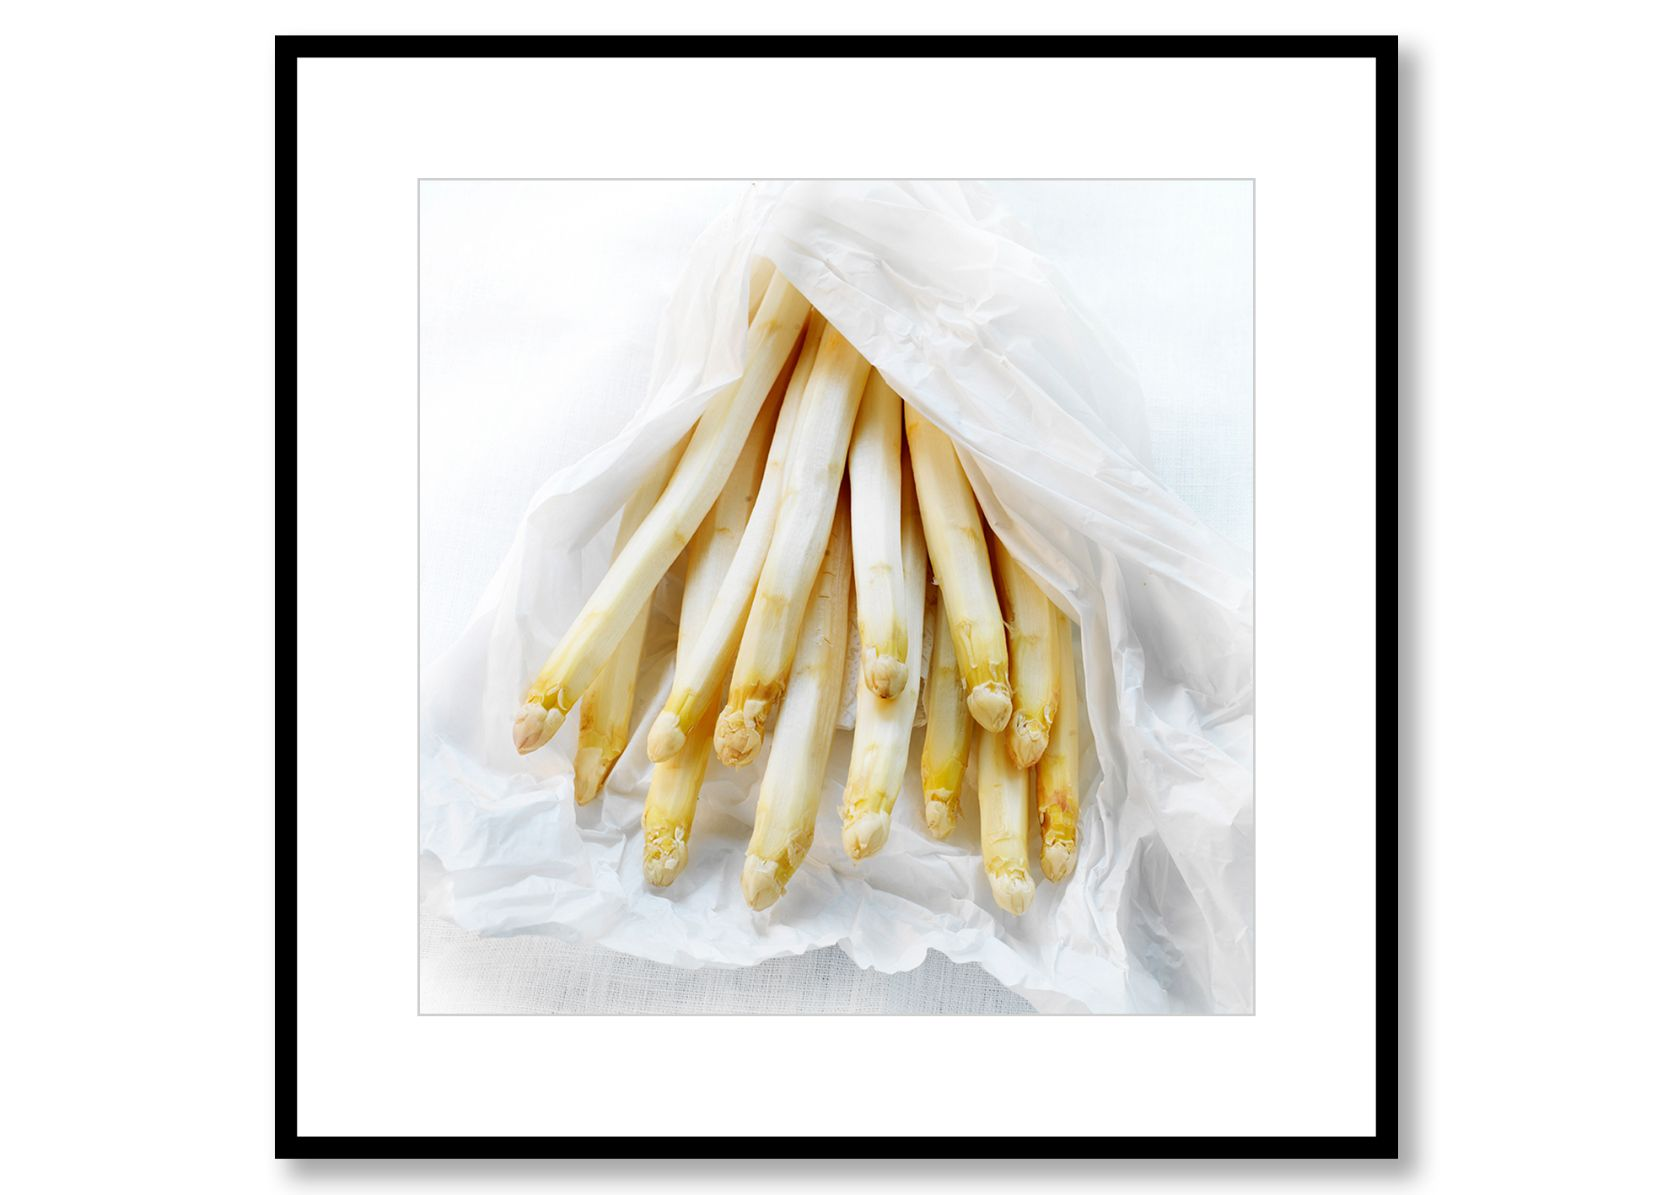 White asparagus. Food Art. Prints for sale. Photo by Fredrik Rege